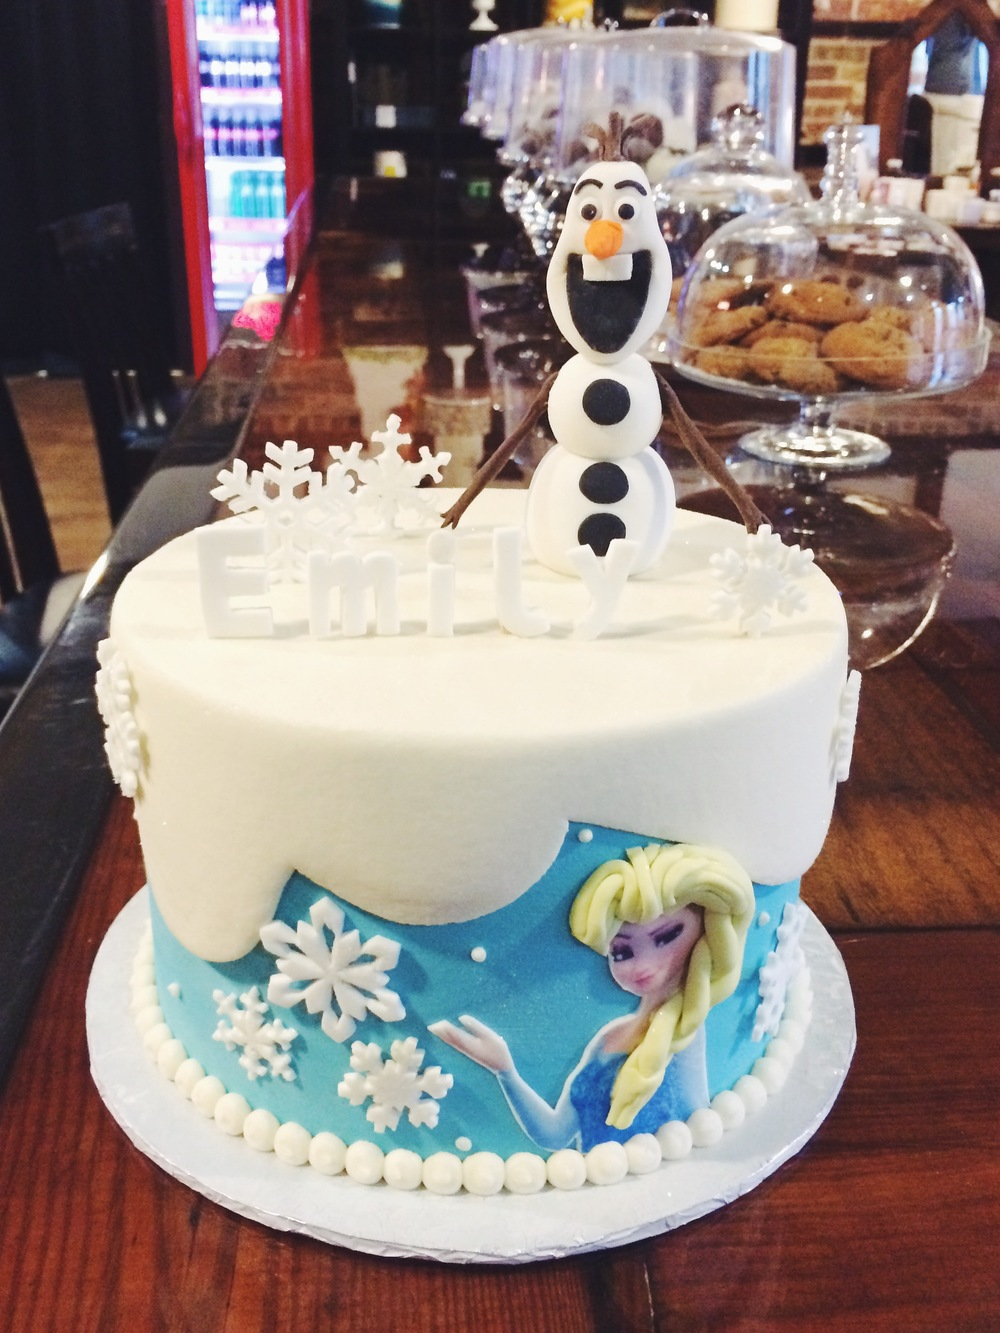 frozen-olaf-party-cake-sugarbeesweets.JPG